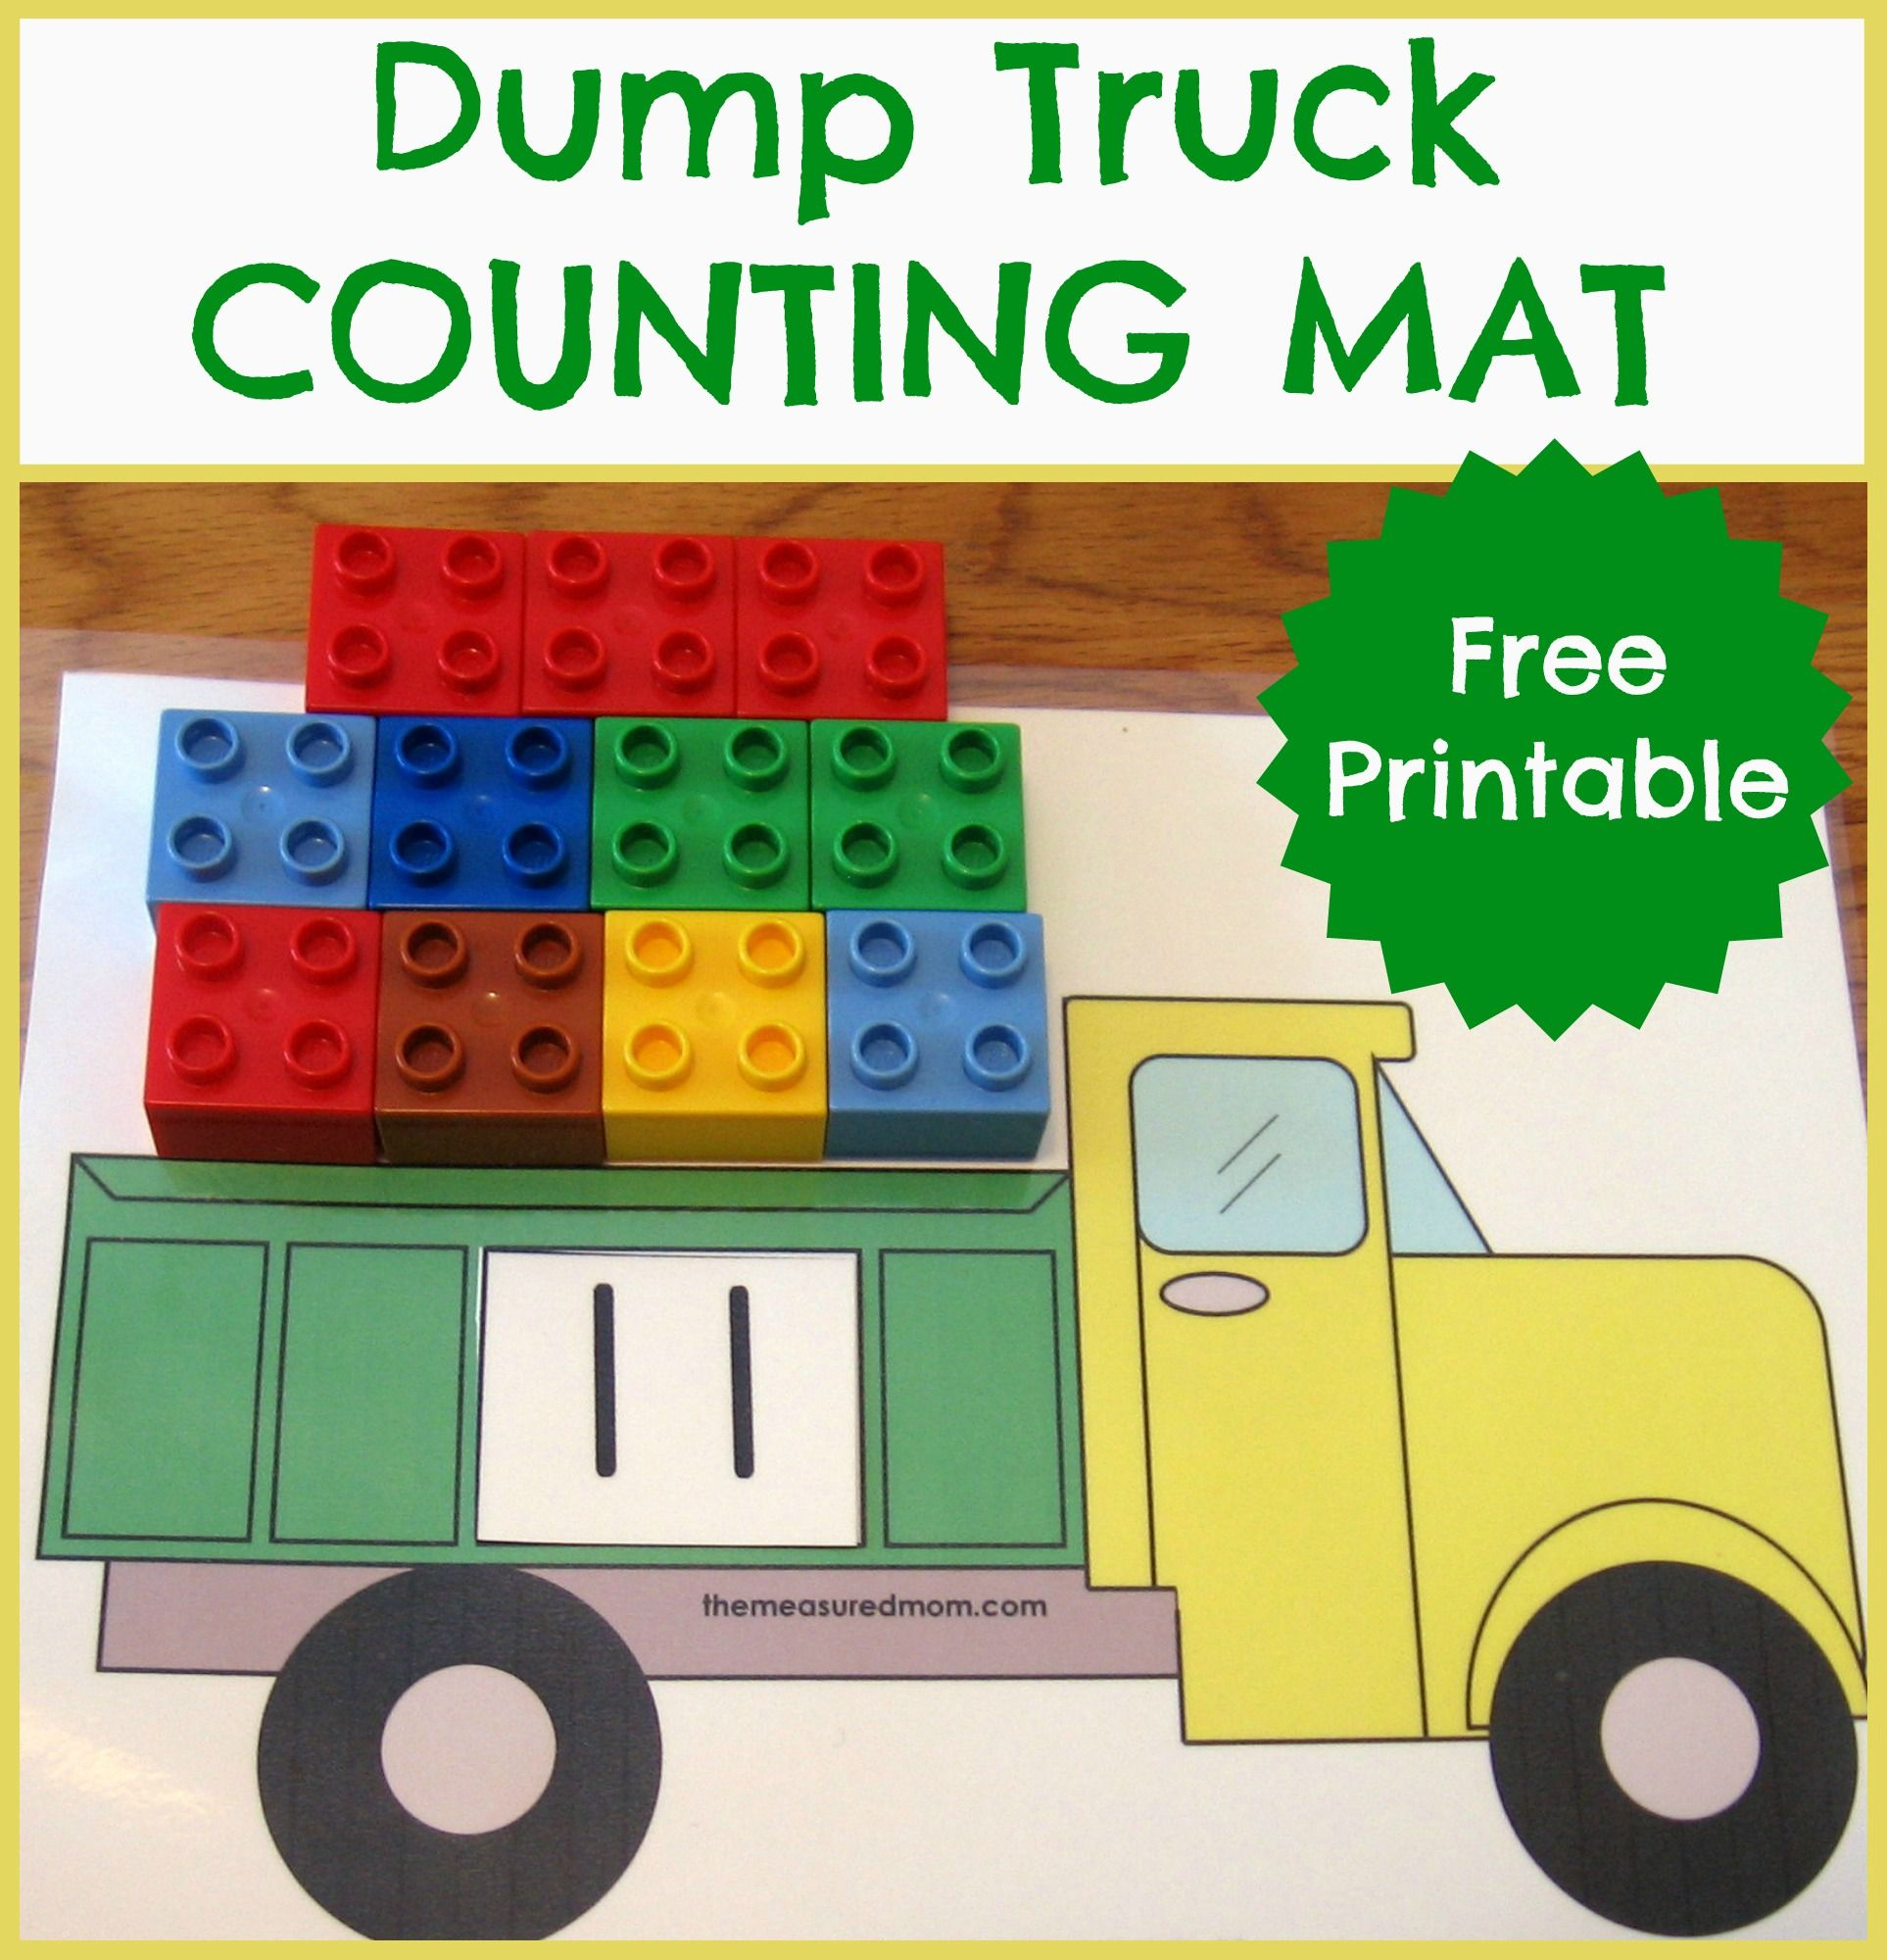 Free Printable Counting Mat: Fill the Dump Truck! from The Measured Worm...thinking I will use it as a subtraction activity in my block center:)